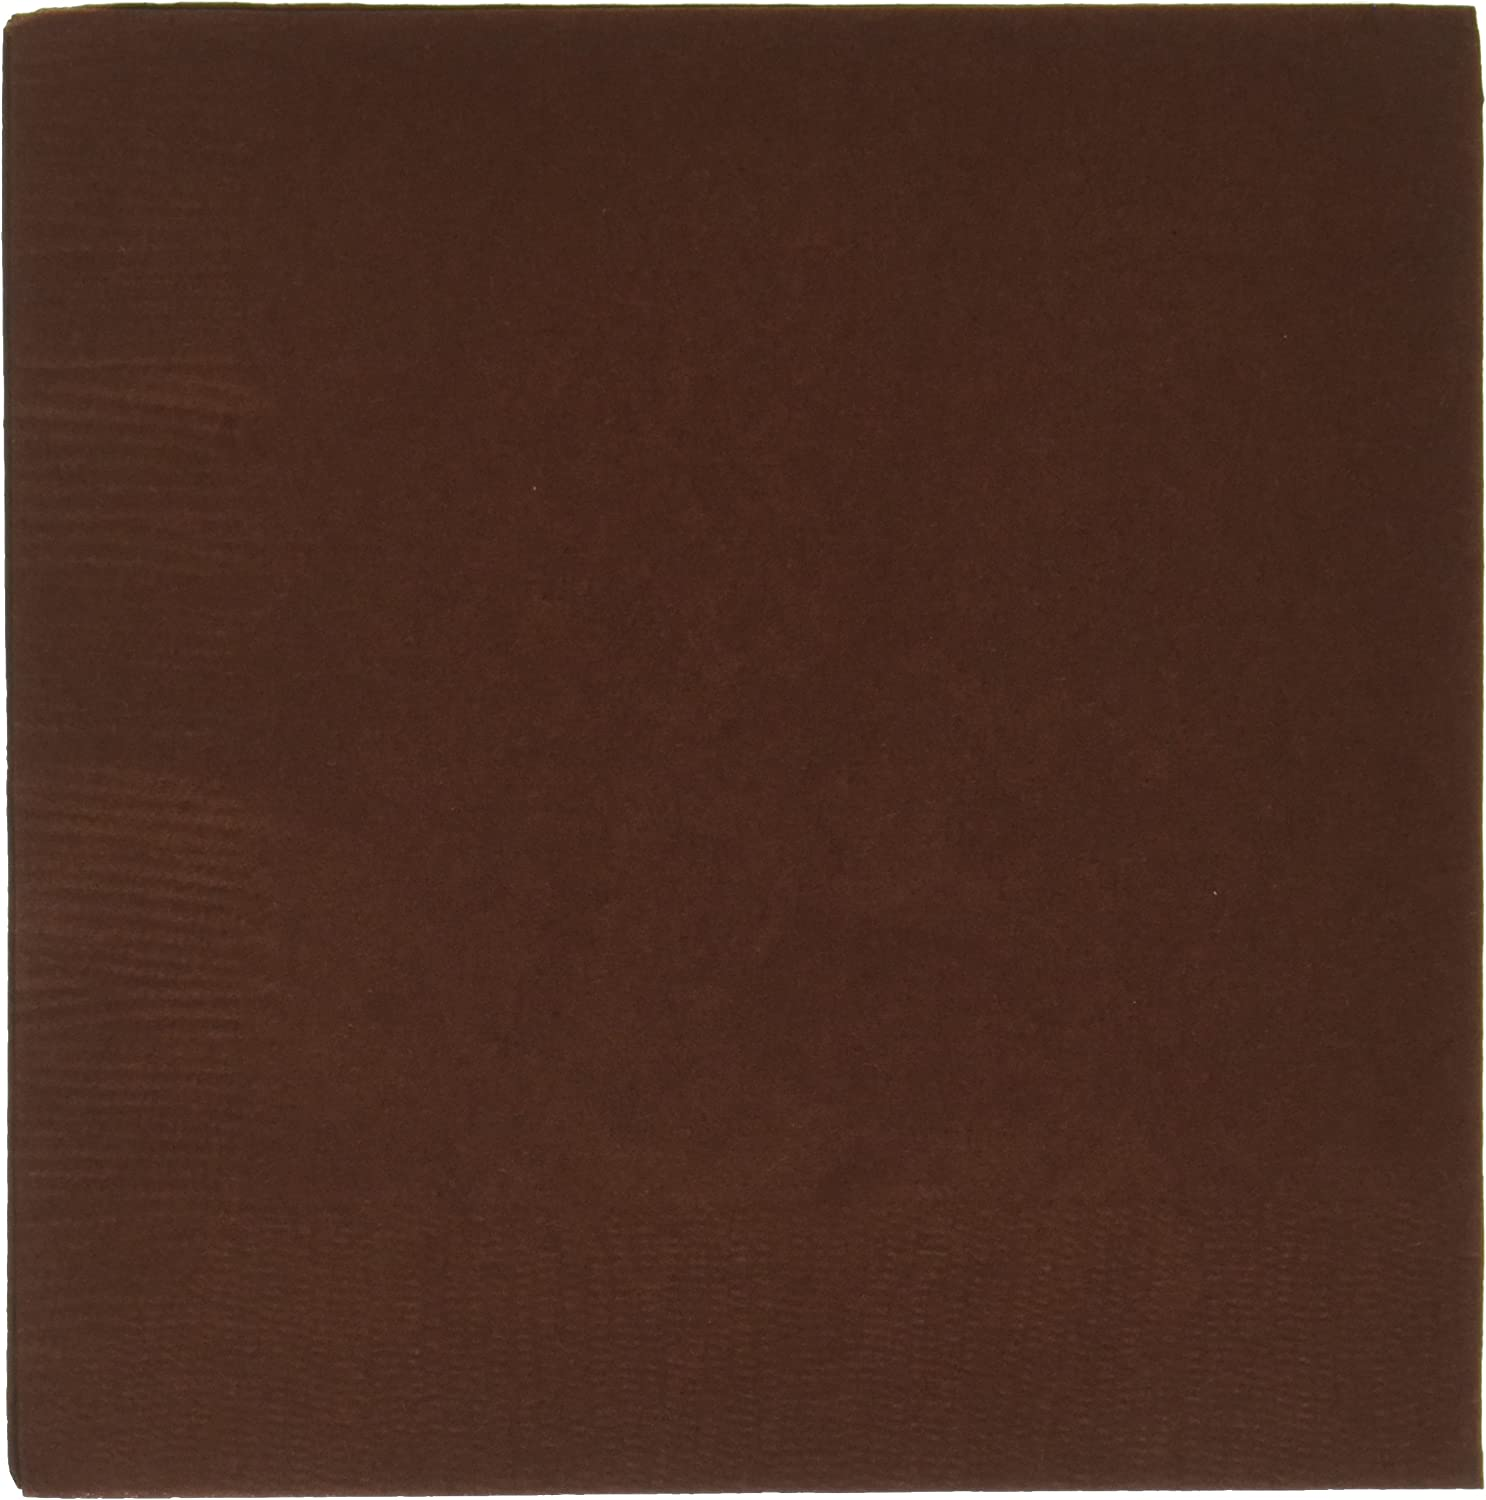 Chocolate Brown 2-Ply Beverage Napkins | Pack of 50 | Party Supply